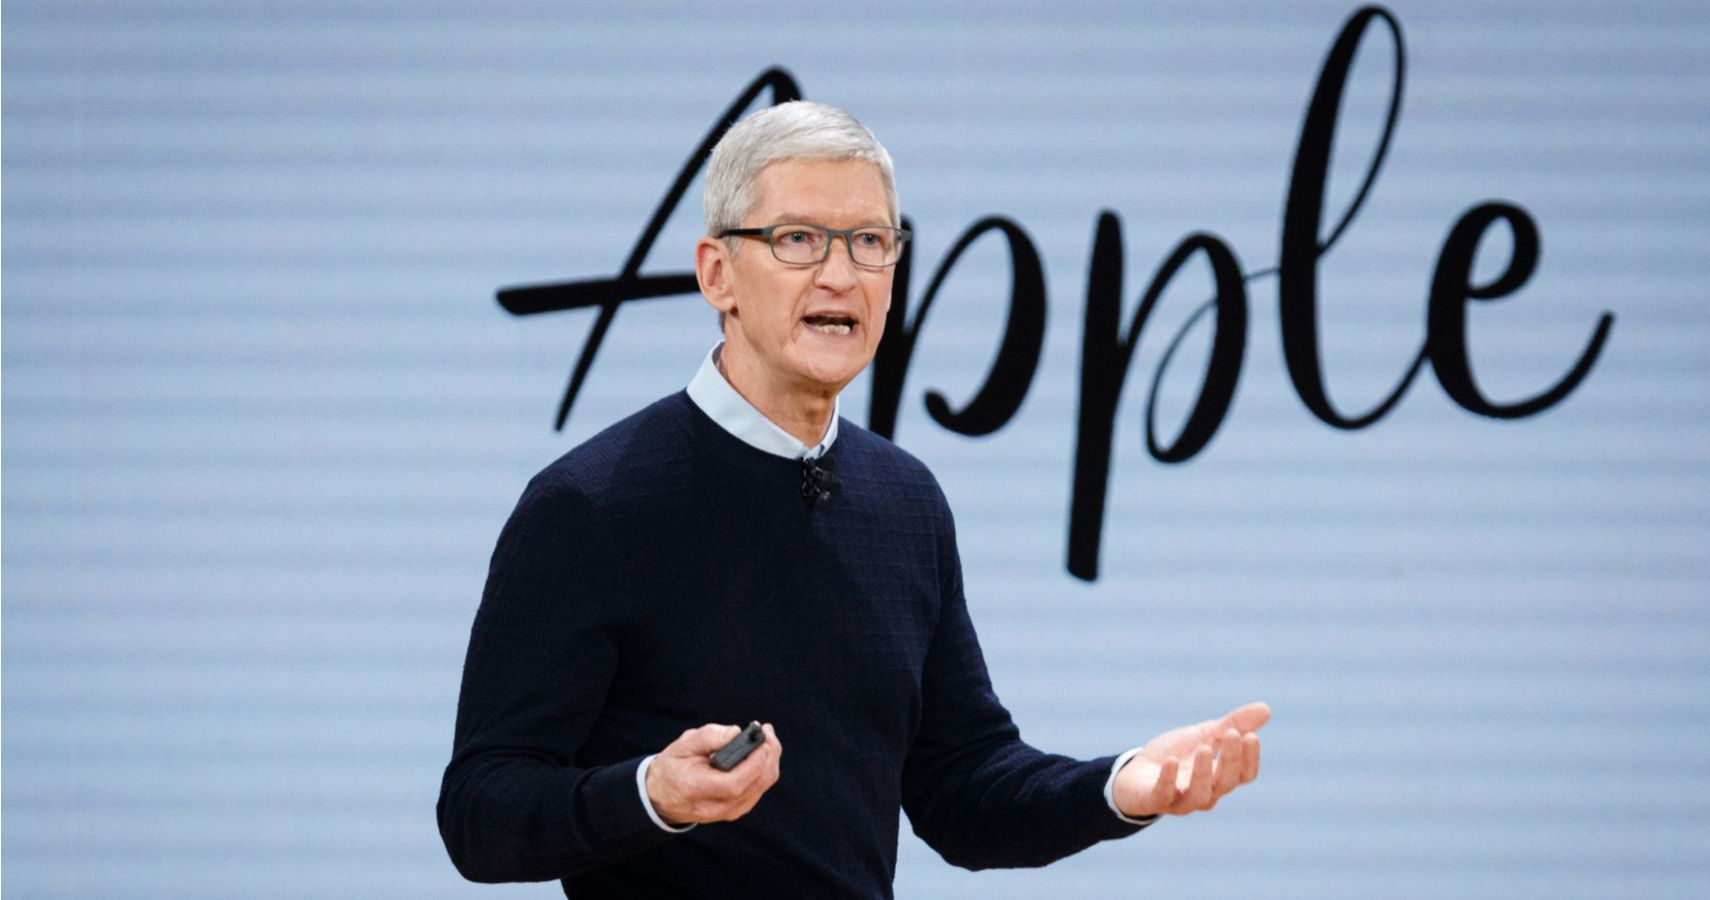 From Student To CEO: The Rise Of Apple's Tim Cook